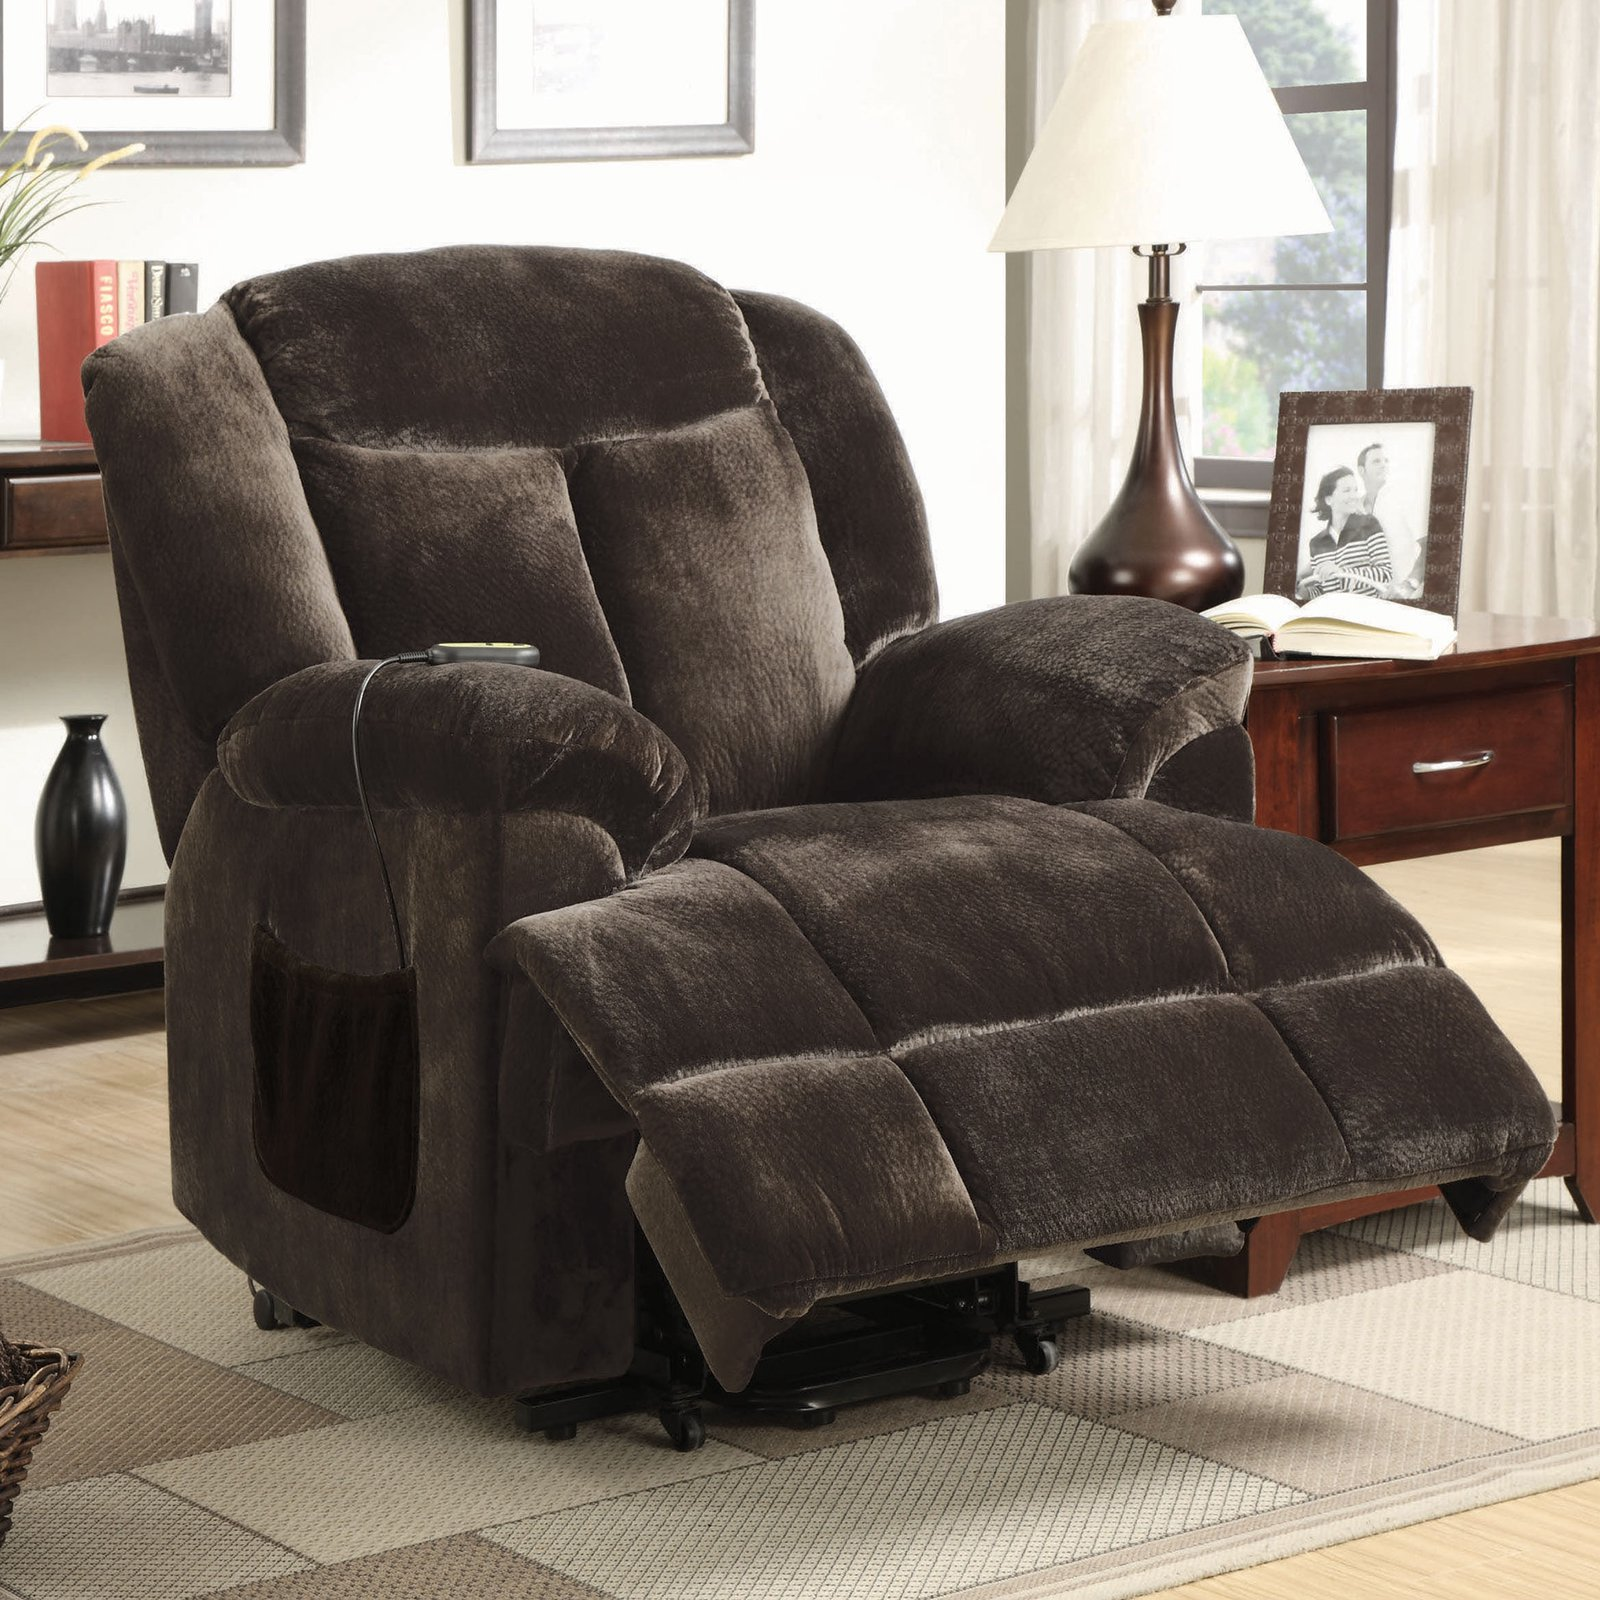 Coaster Padded Back Power Lift Recliner Brown & Coaster Padded Back Power Lift Recliner Brown - Walmart.com islam-shia.org